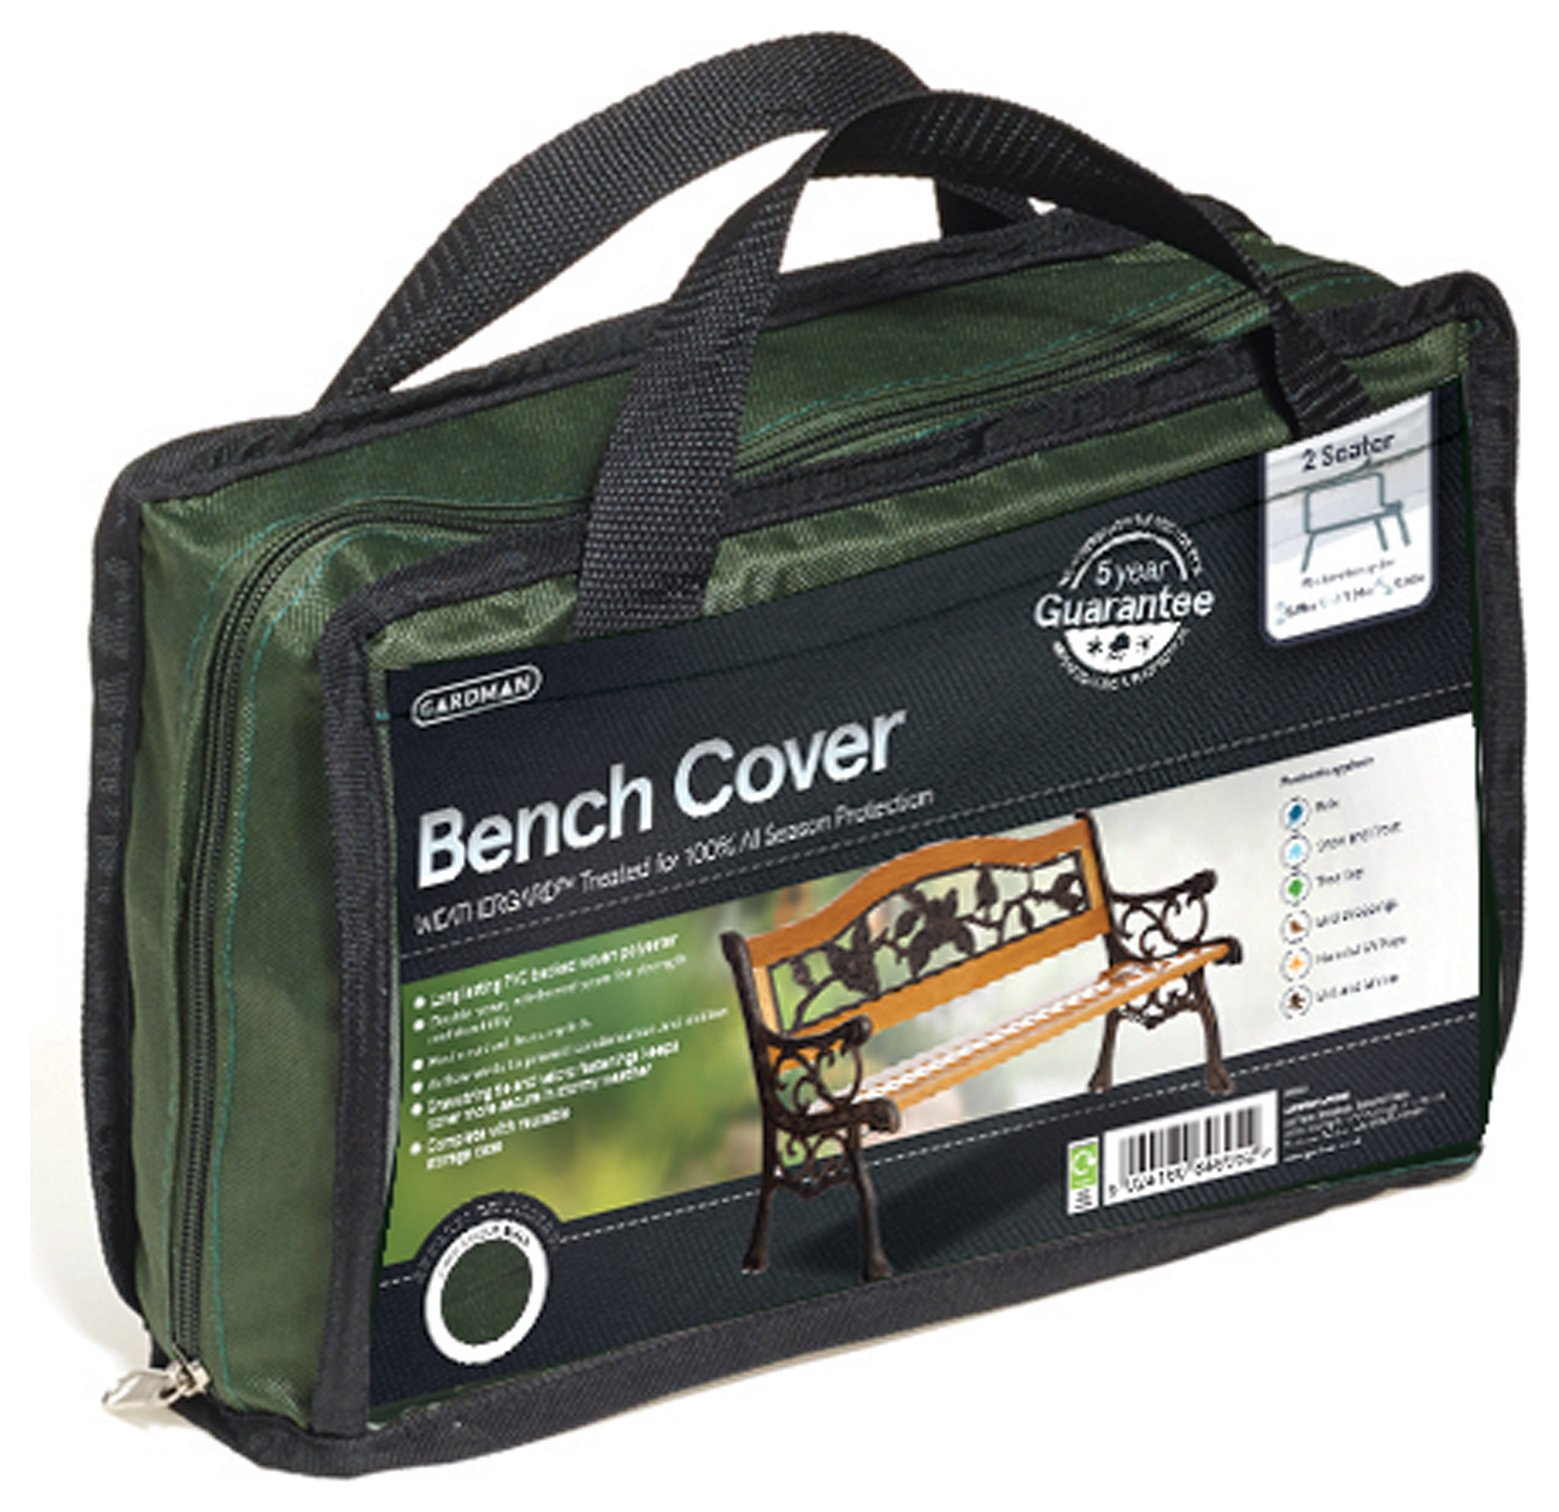 Gardman - 2 Seater Bench Cover - Green lowest price